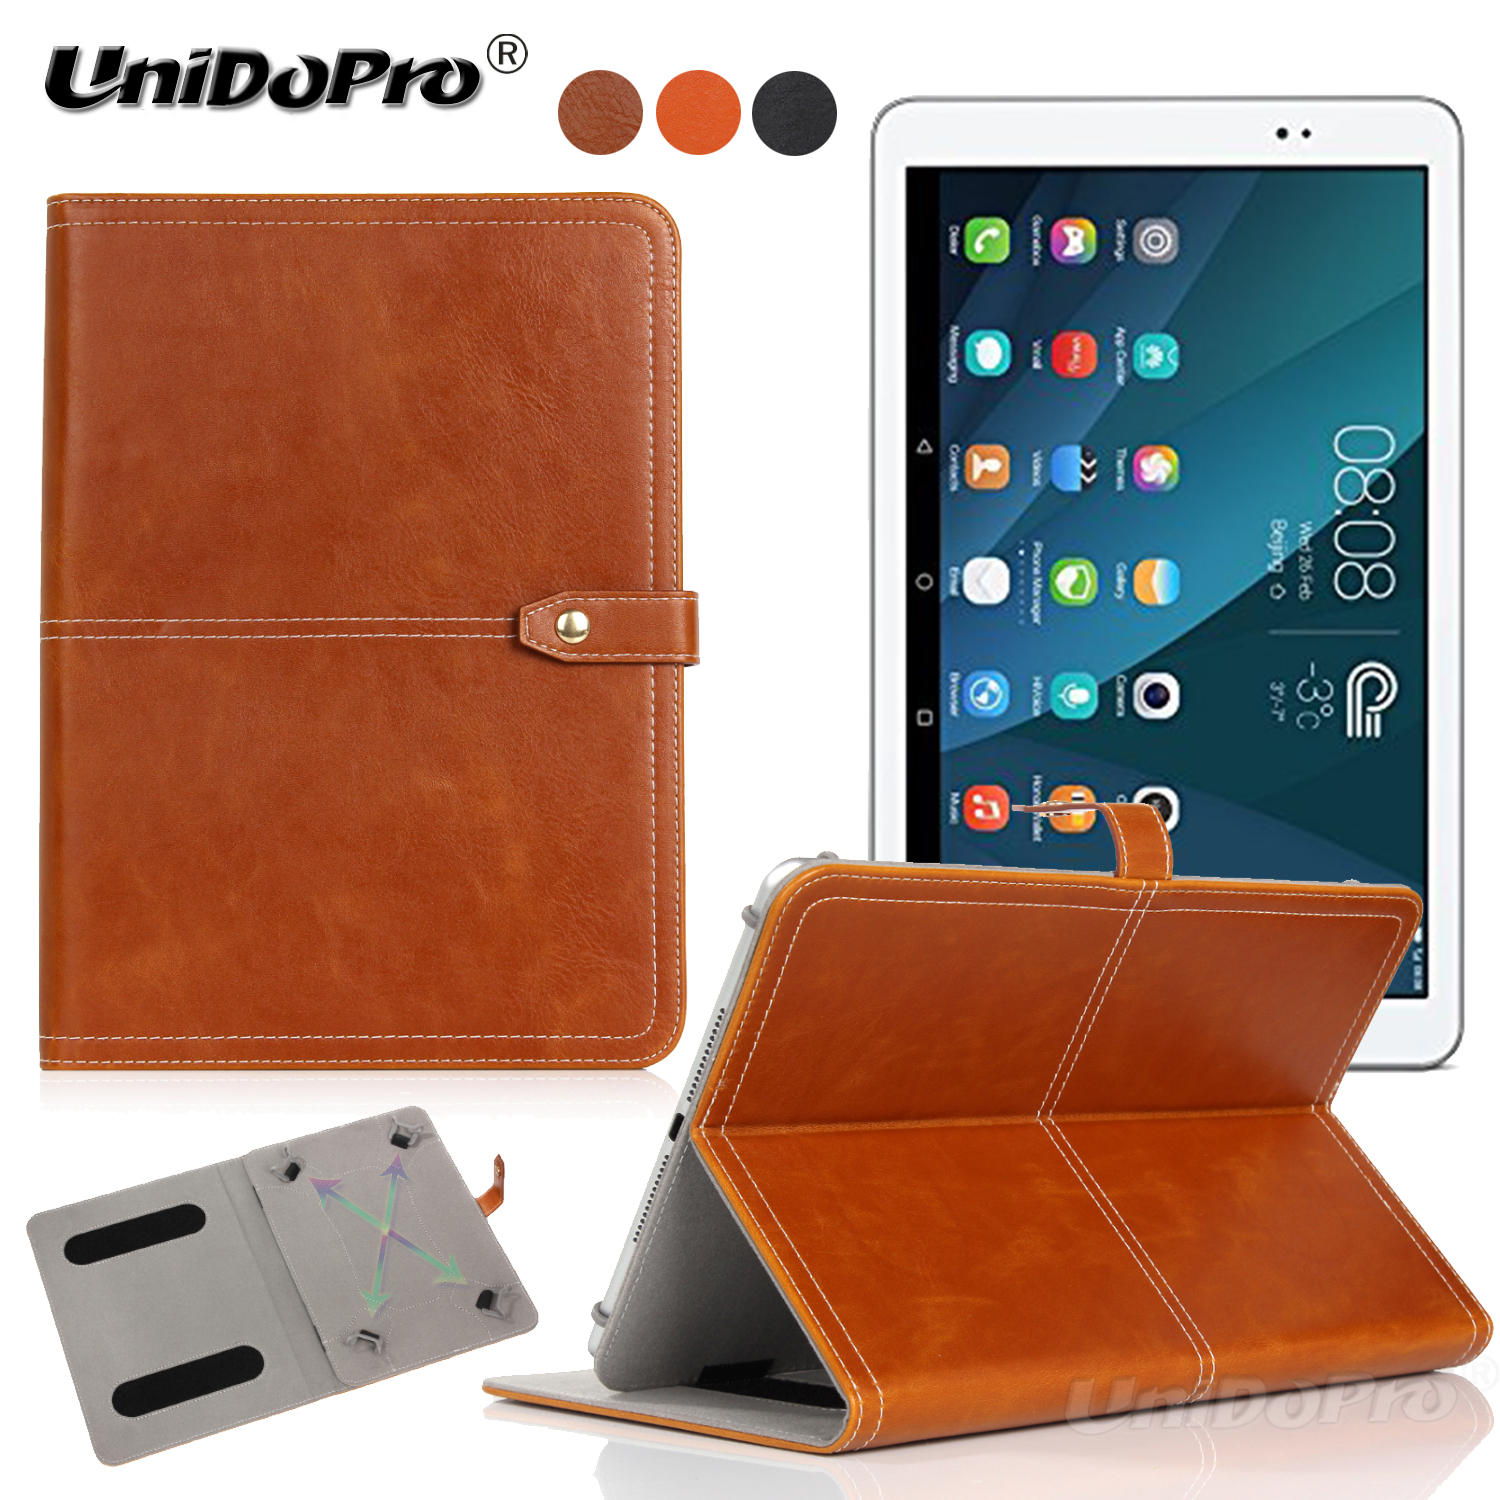 Unidopro Shockproof PU Leather Protector Folio Case for Xiaomi Mi Pad 3 2 7.9 Tablet des Cas de w/ Multi-angle Stand Cover